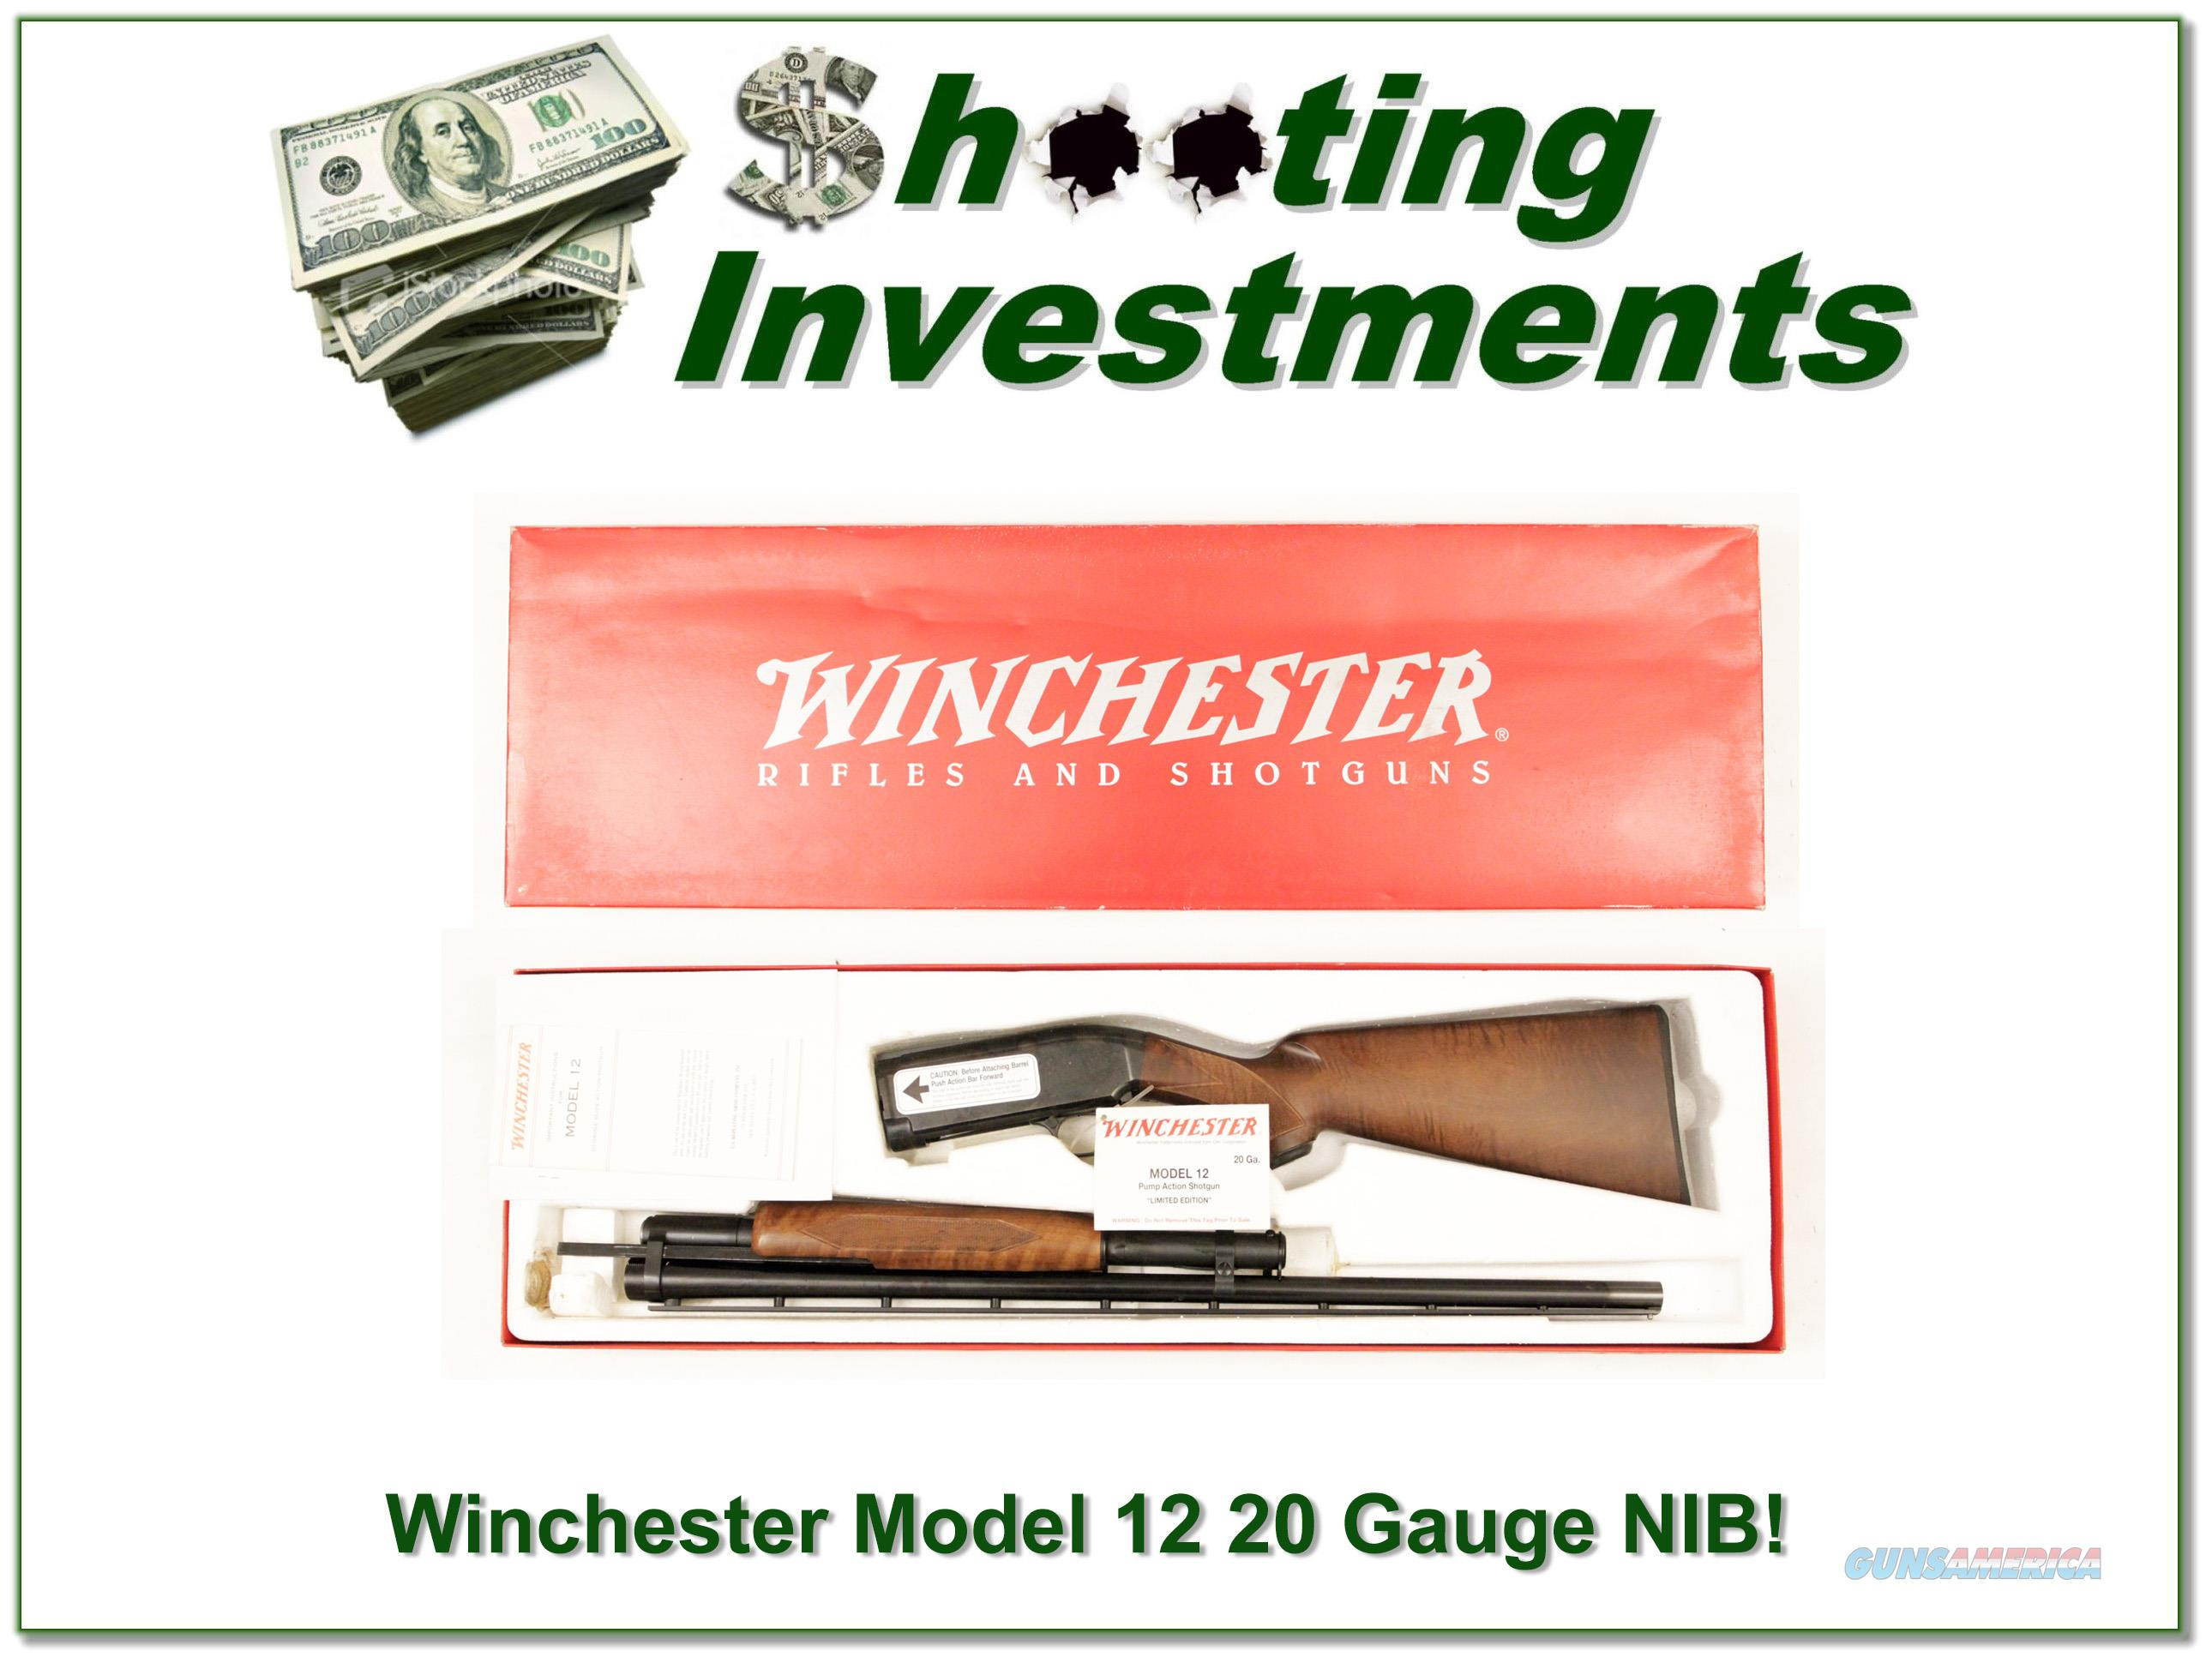 Winchester Model 12 Limited Edition 20 Gauge NIB!  Guns > Shotguns > Winchester Shotguns - Modern > Pump Action > Hunting